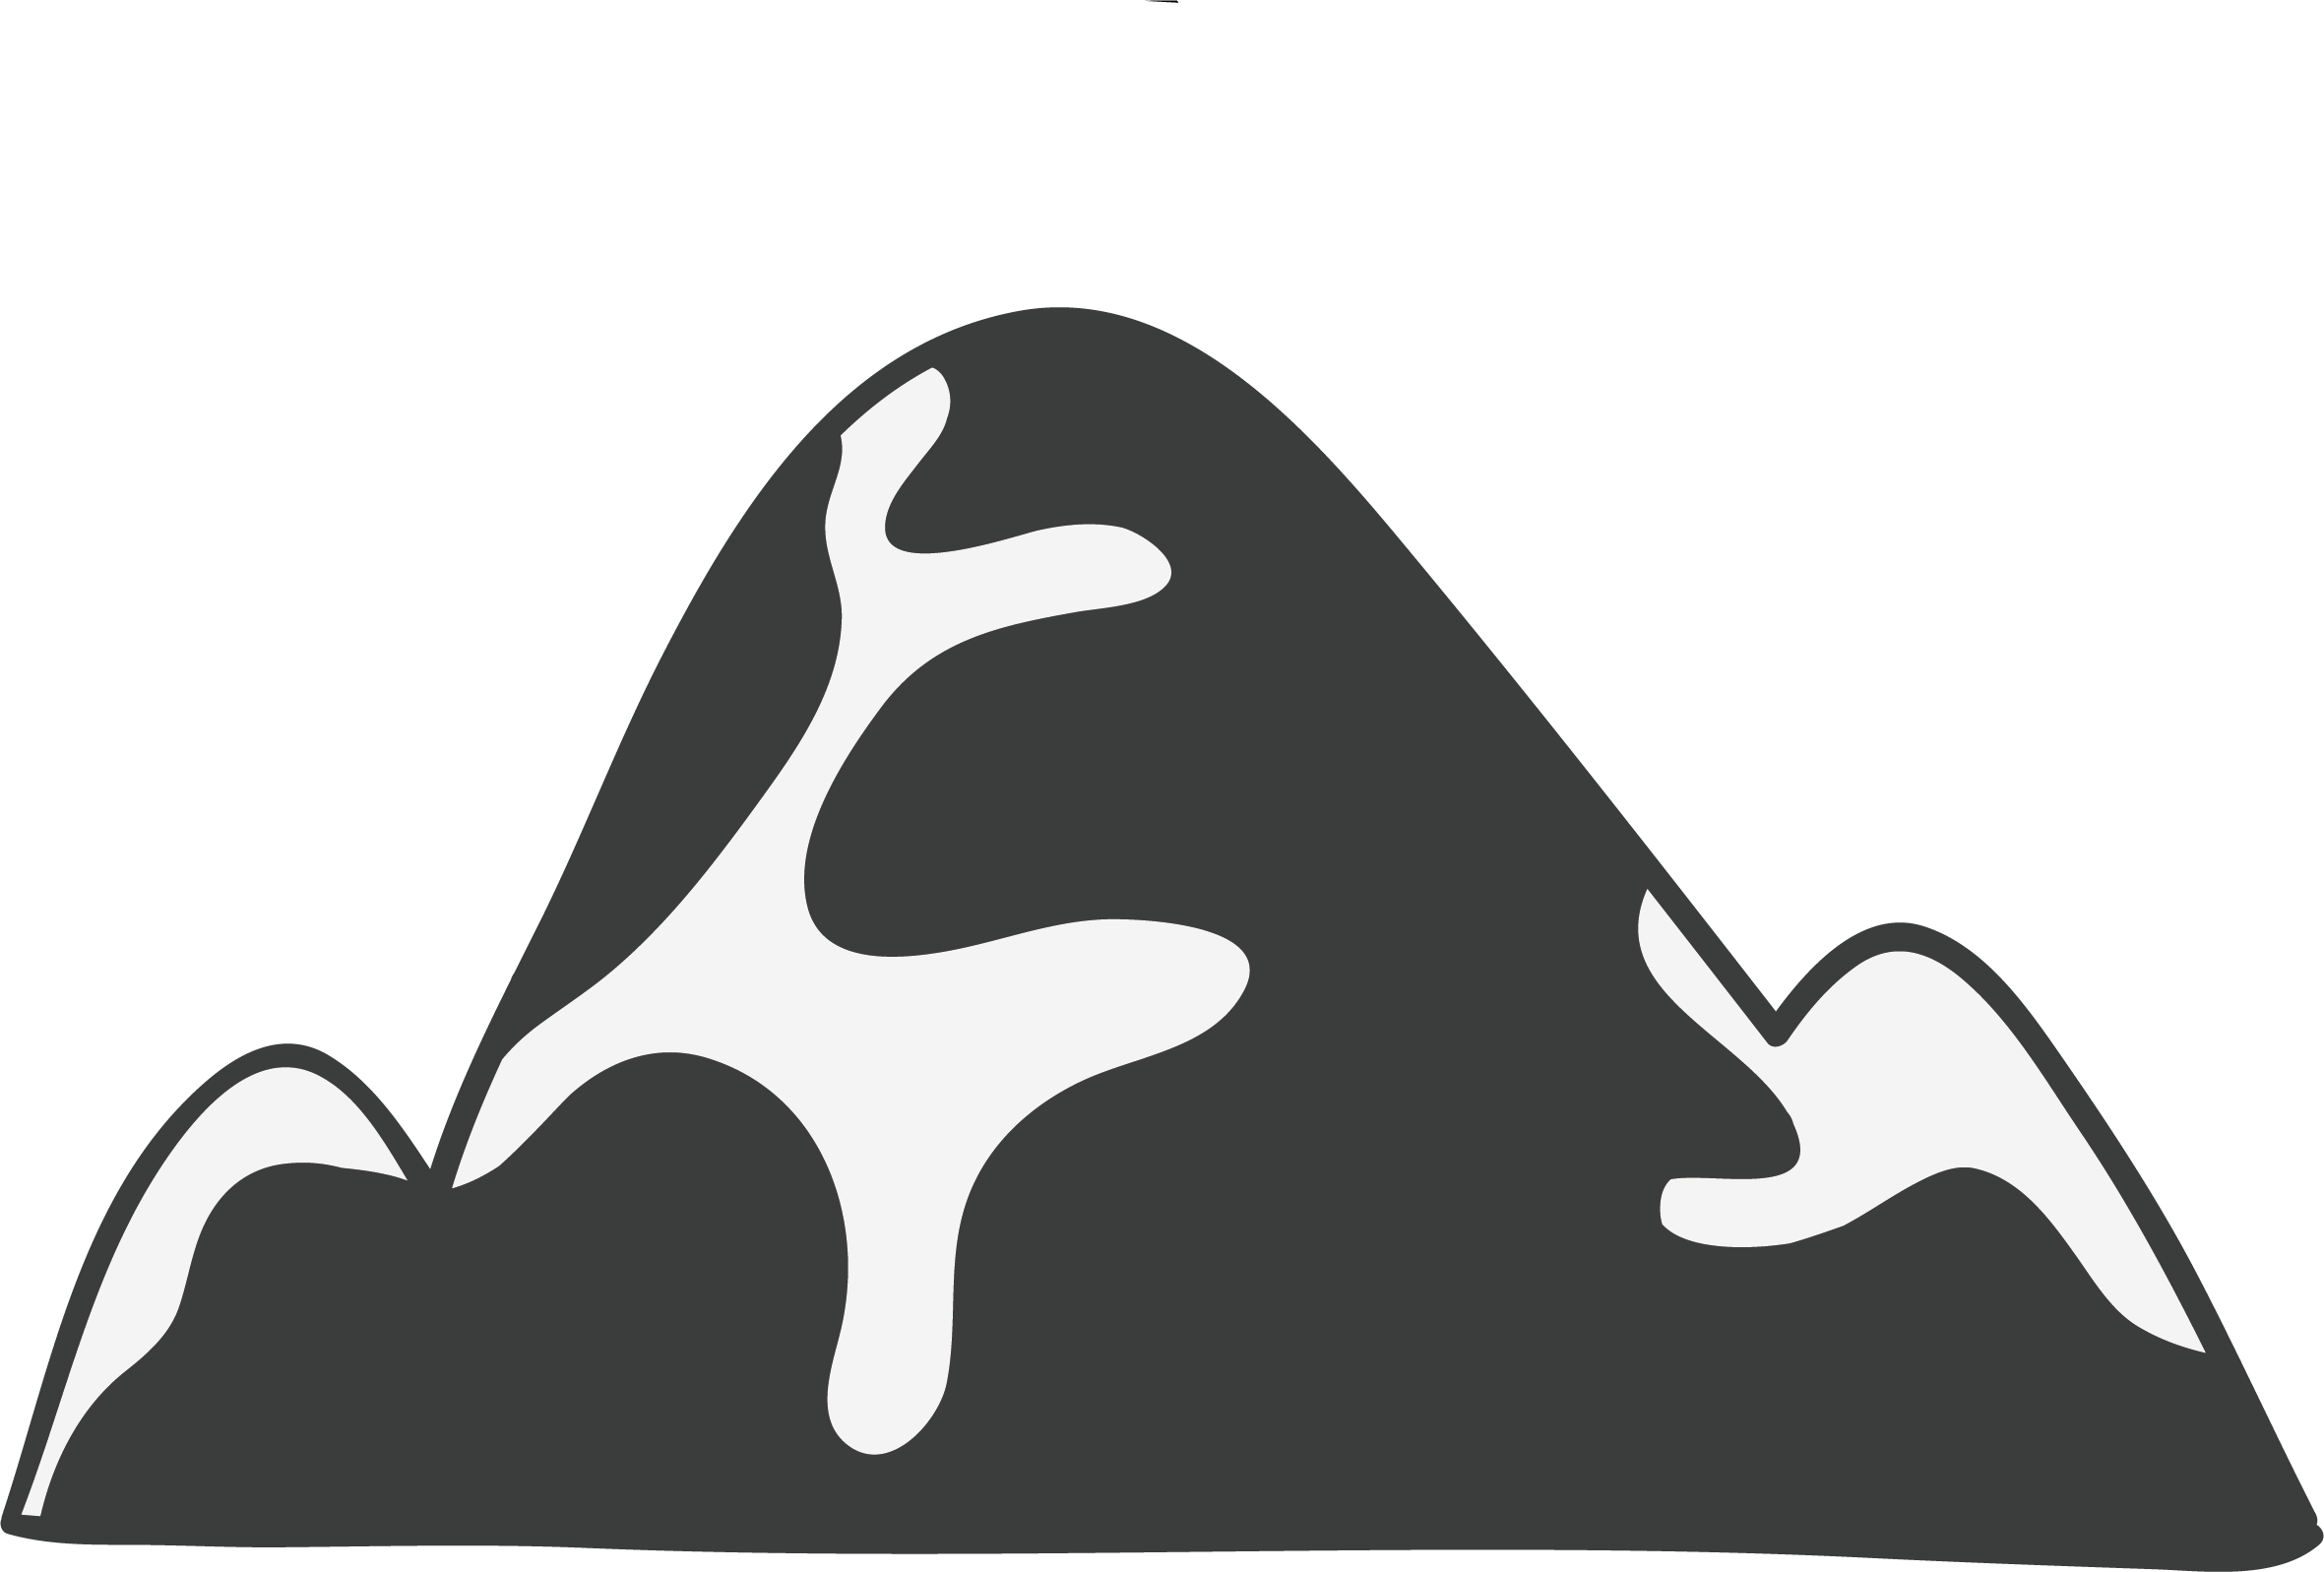 Silhouette at getdrawings com. Glacier clipart tip iceberg